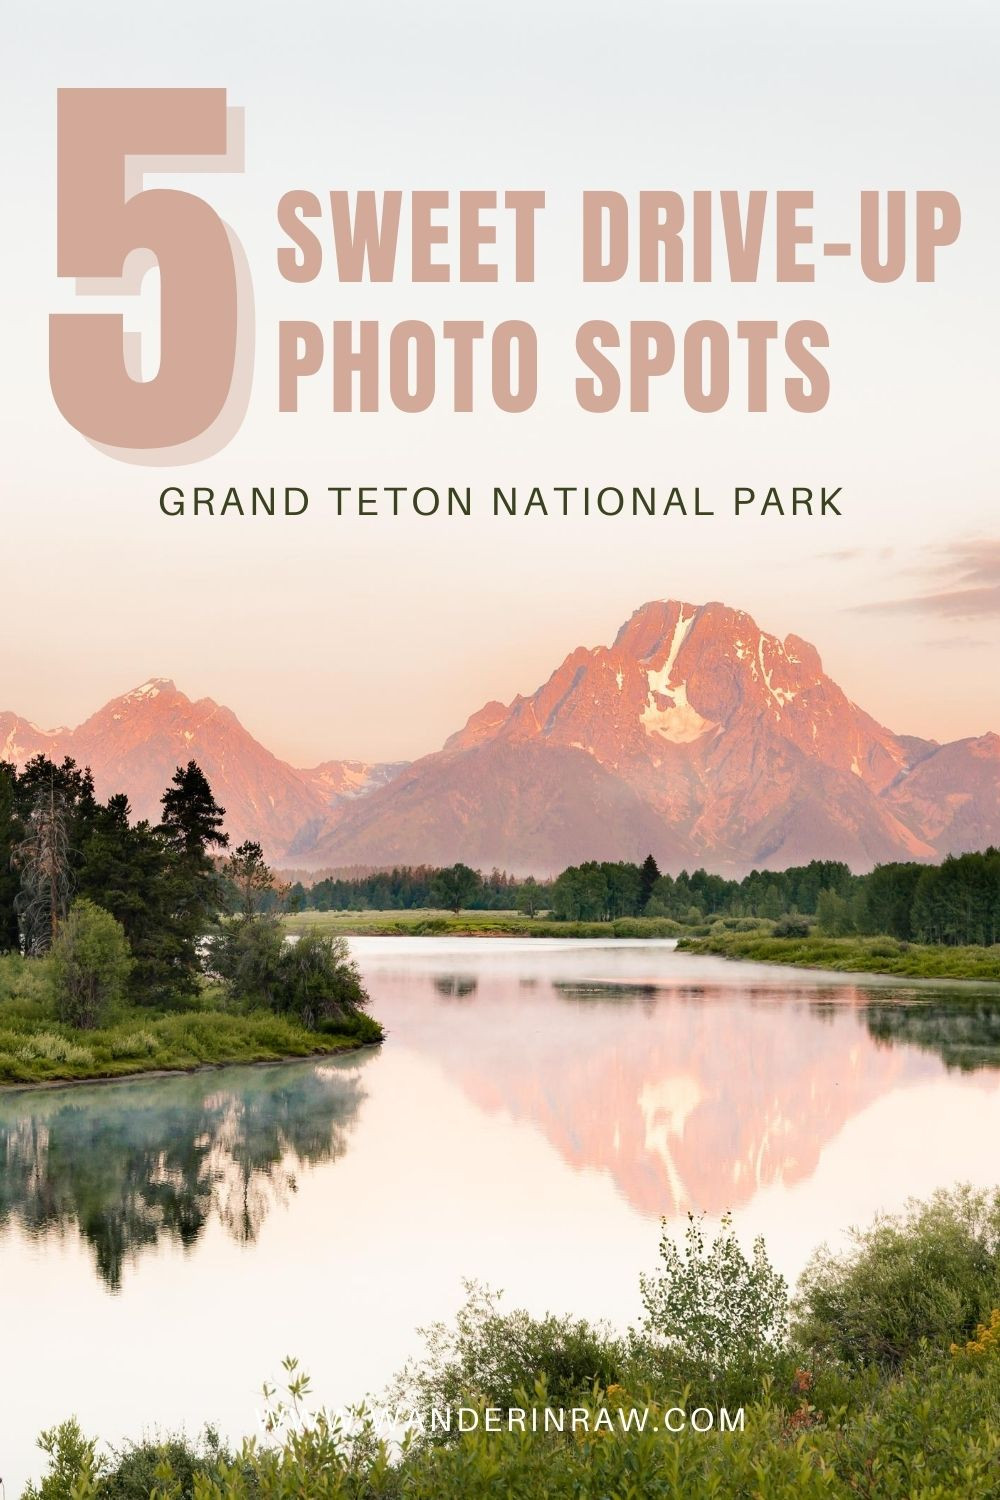 Grand Teton National Park, Tetons, Jackson Hole, Wyoming, Mormon Row, Morton Barn, Snake River Overlook, Oxbow Bend, Signal Mountain, Schwabacher's Landing